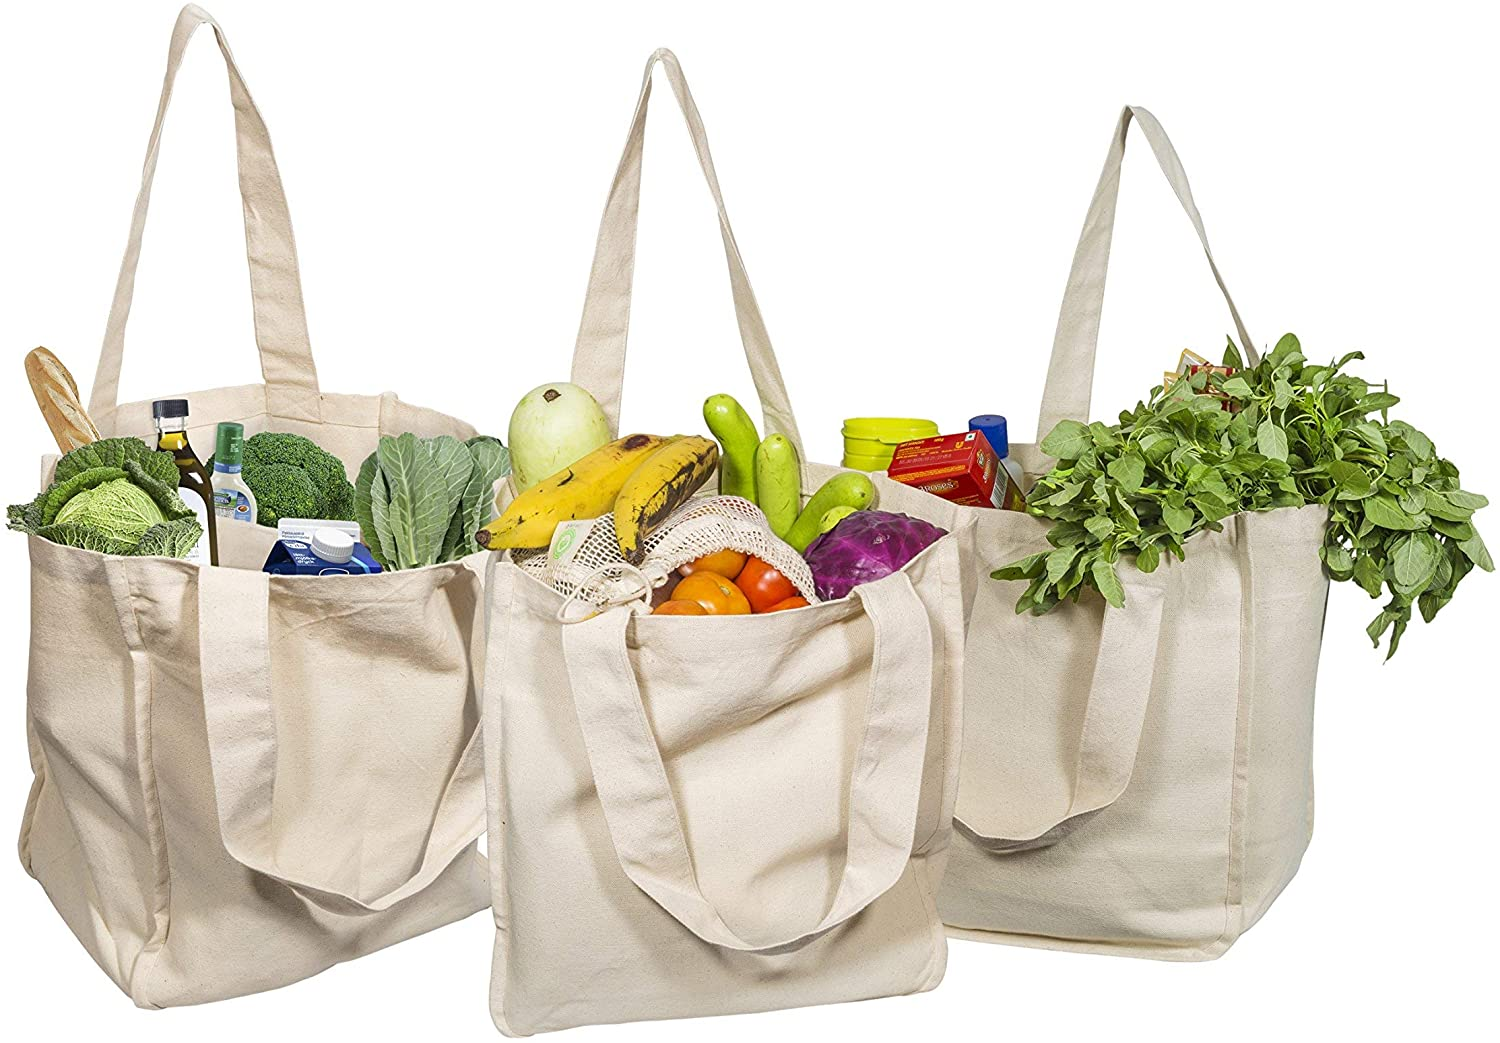 High-Quality Reusable Shopping Bags For Providing Great Benefits